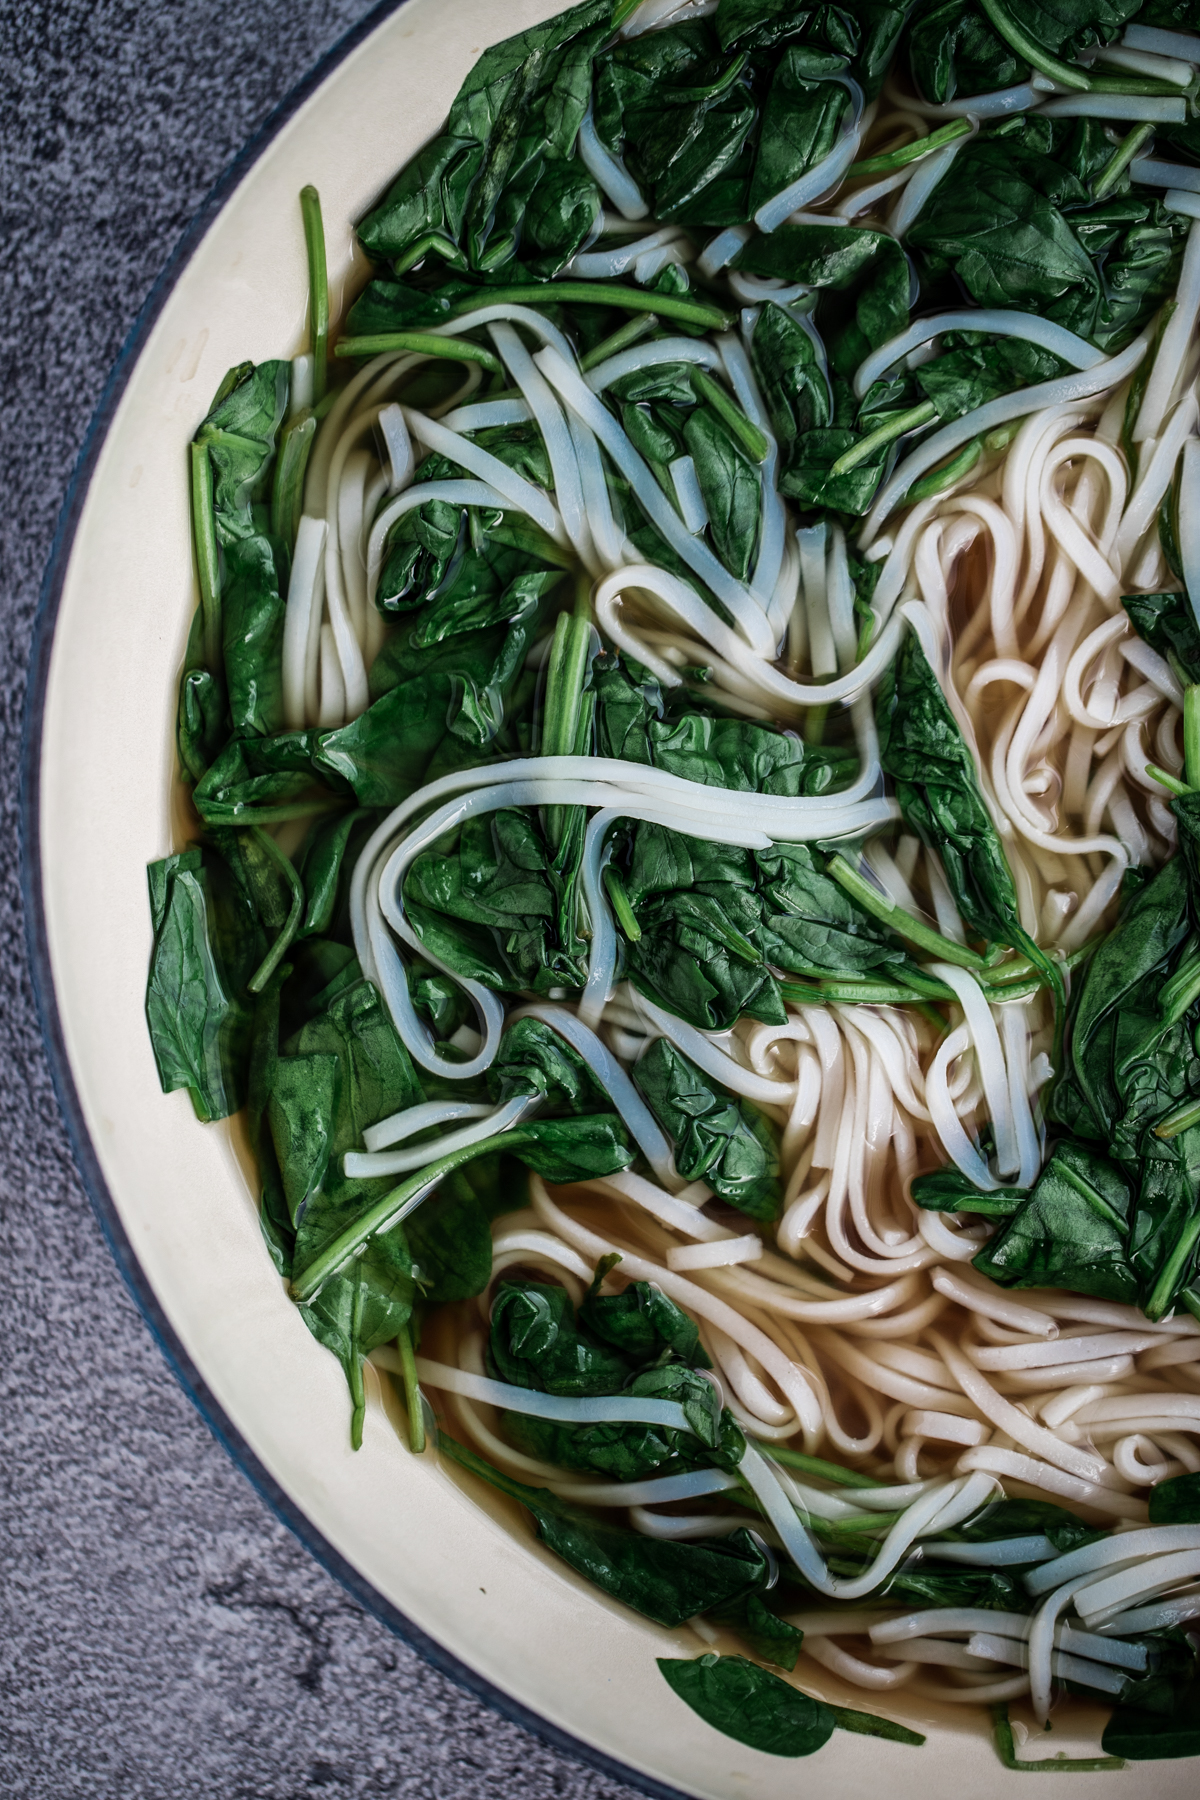 Overhead shot of spinach and white rice noodles in a pan with pho broth